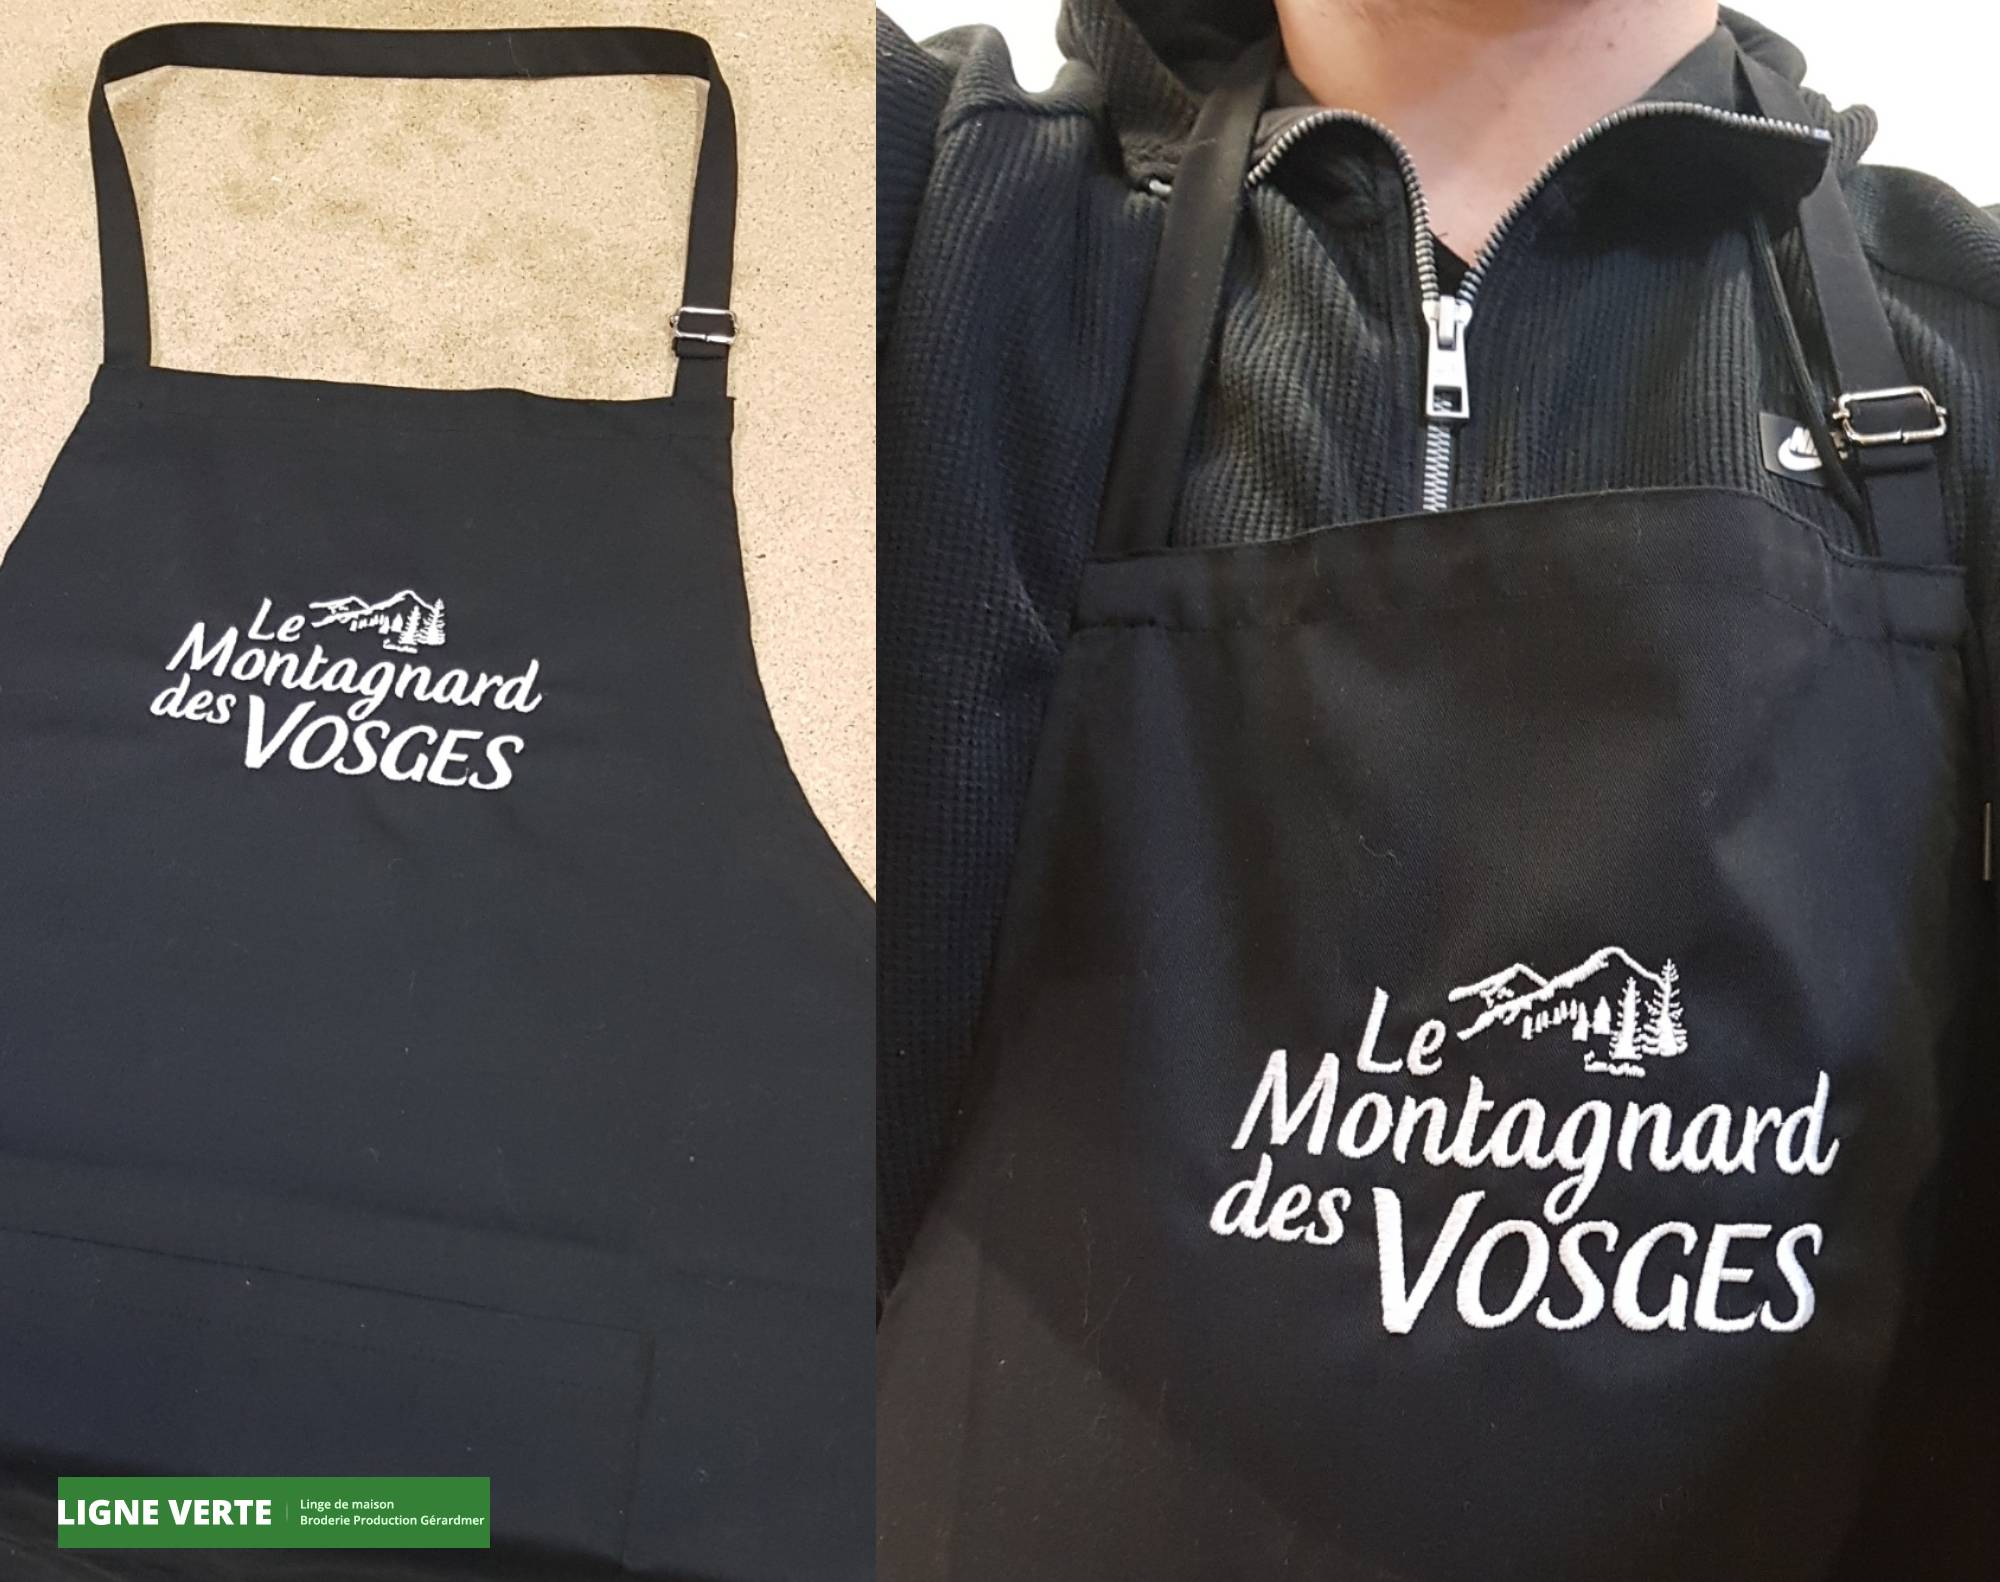 personnalisation textile made in Vosges